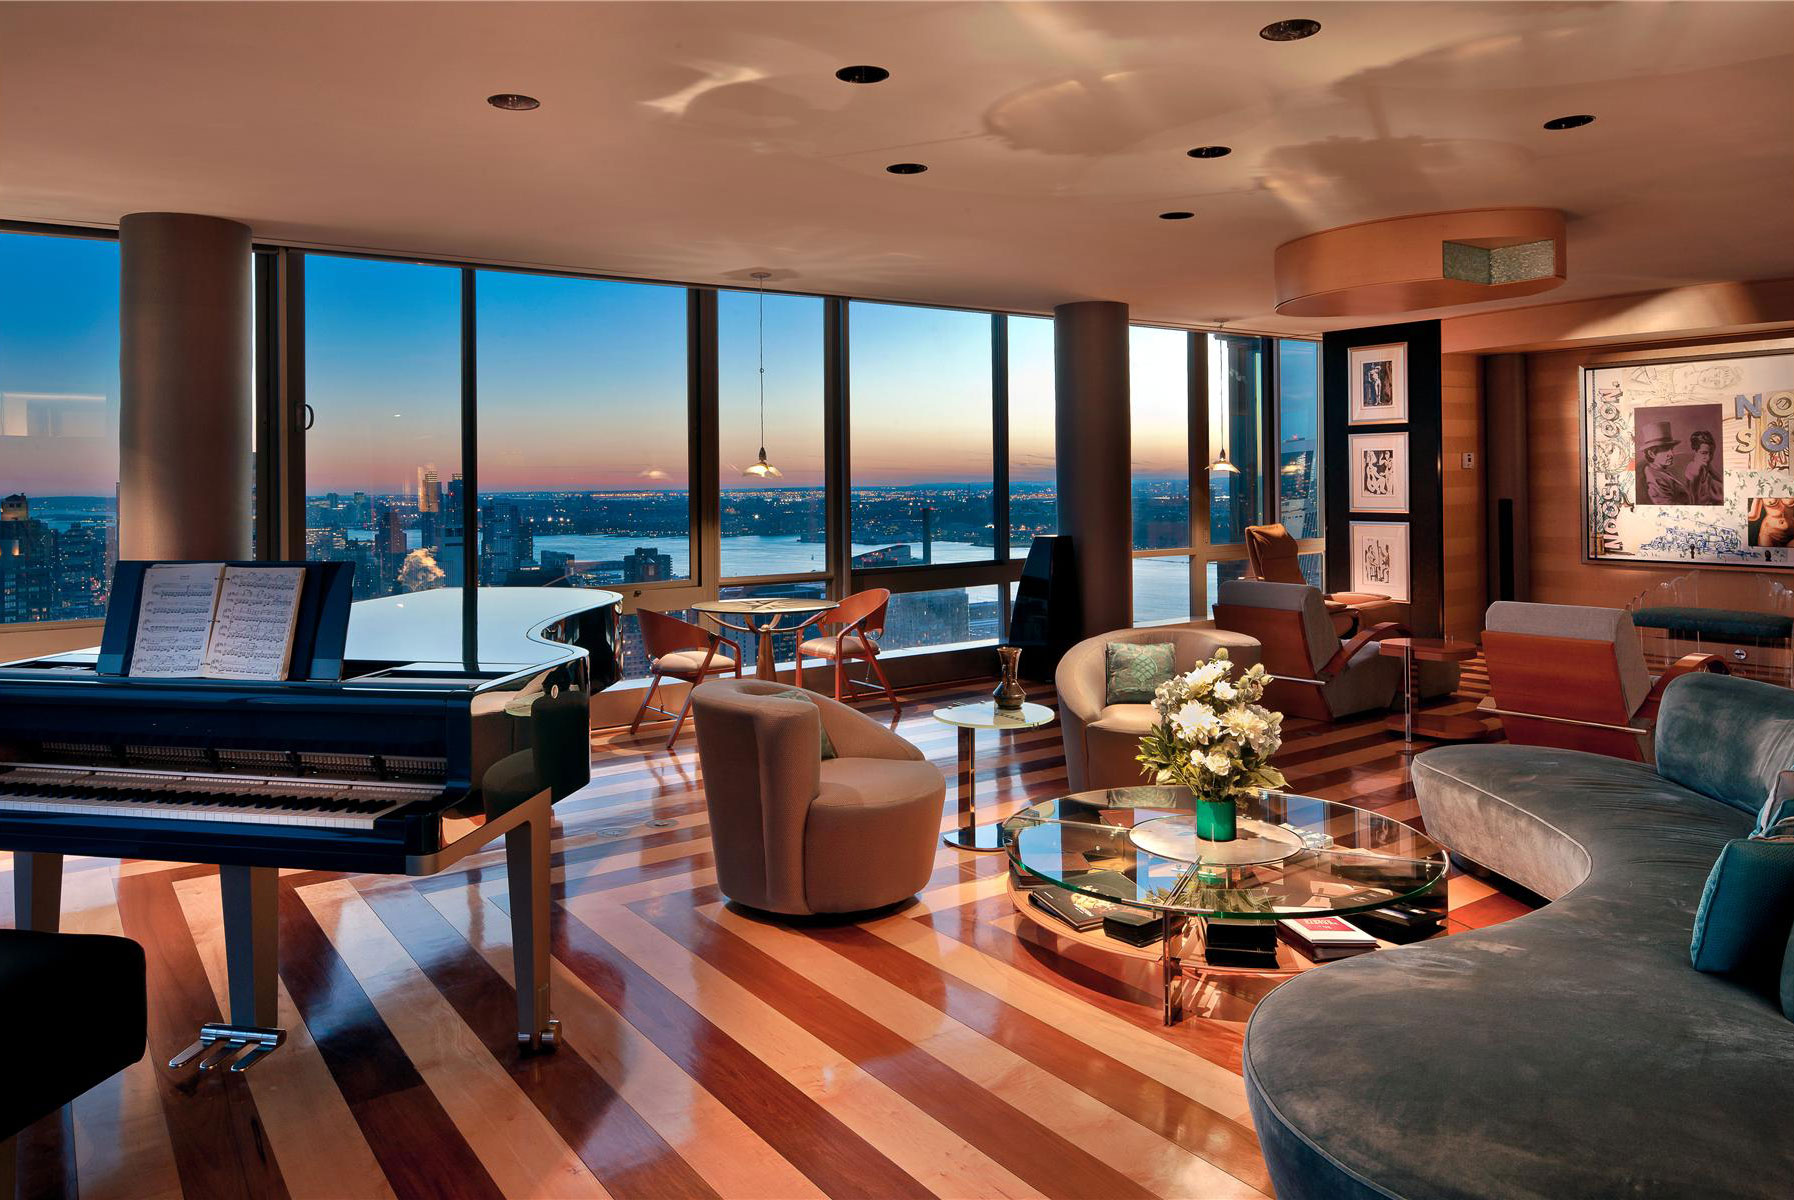 The gartner penthouse for sale in new york city for Luxury apartments in new york city